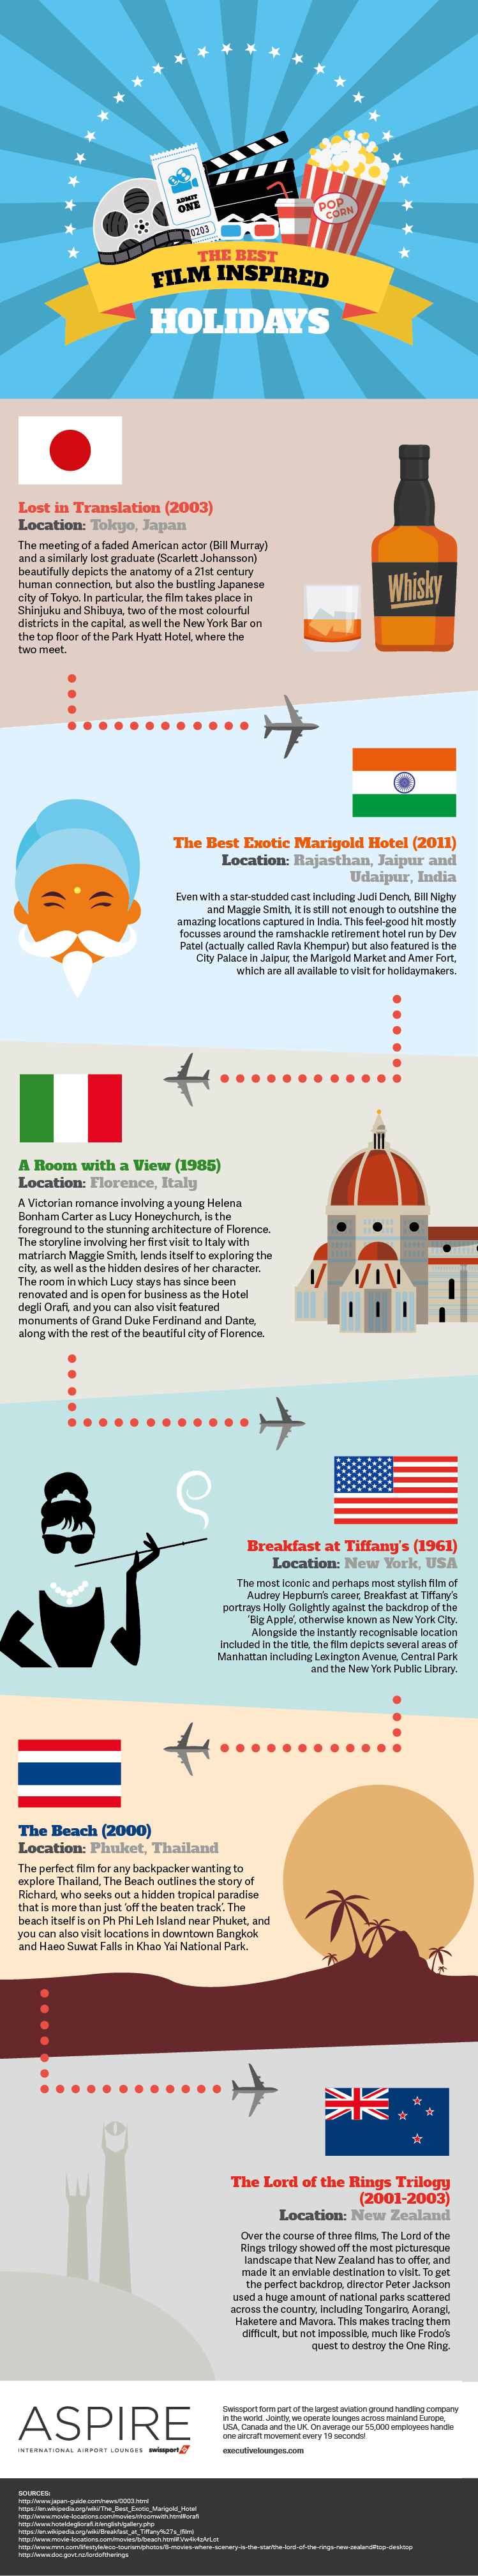 Film Inspired Holidays Infographic